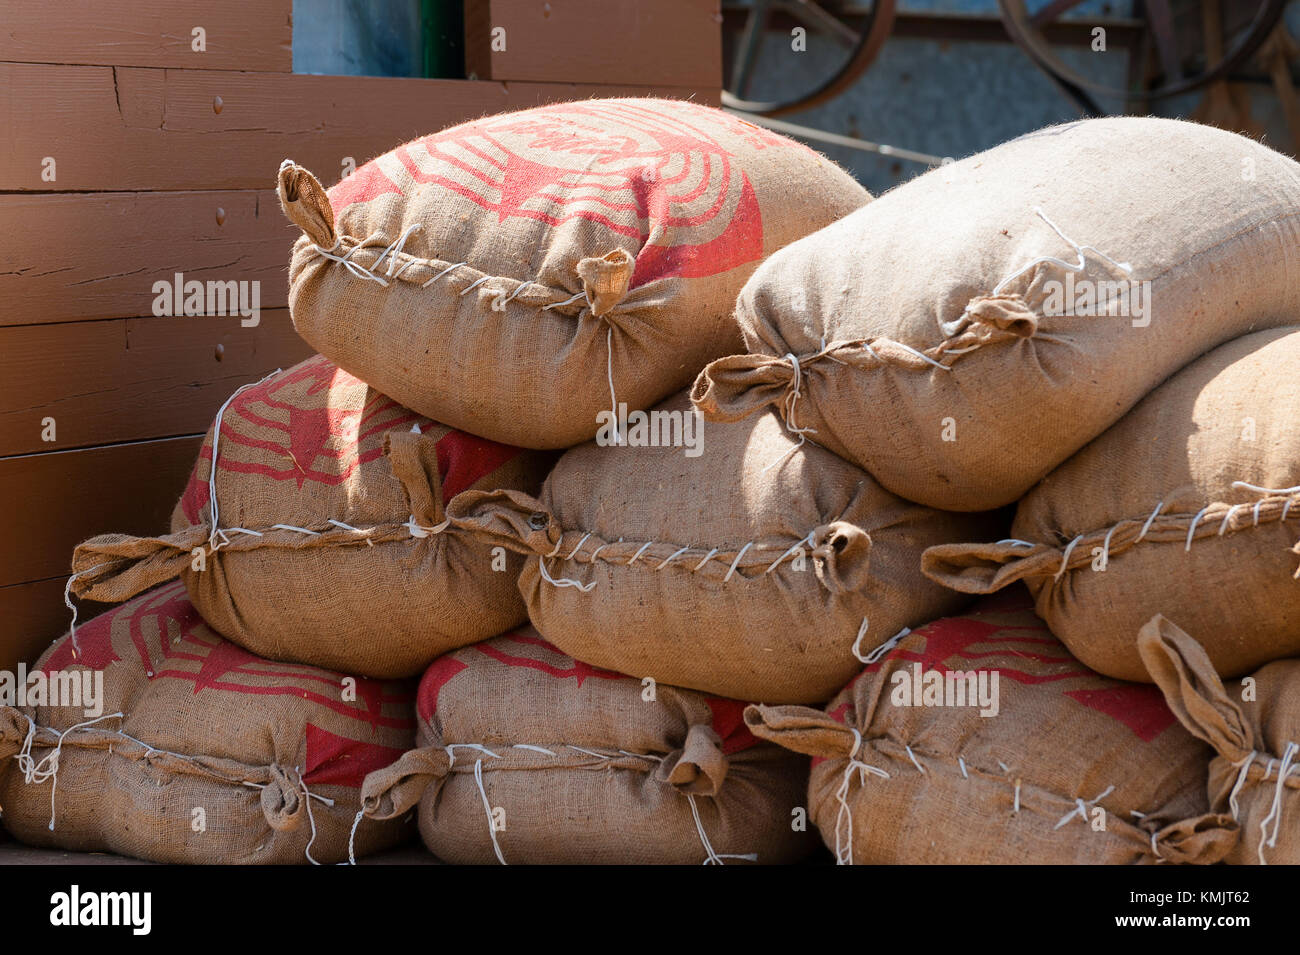 McMinnville, Oregon, USA - August 13, 2016:  Close up of hand sewn burlap sacks of grain on an old flatbed truck - Stock Image